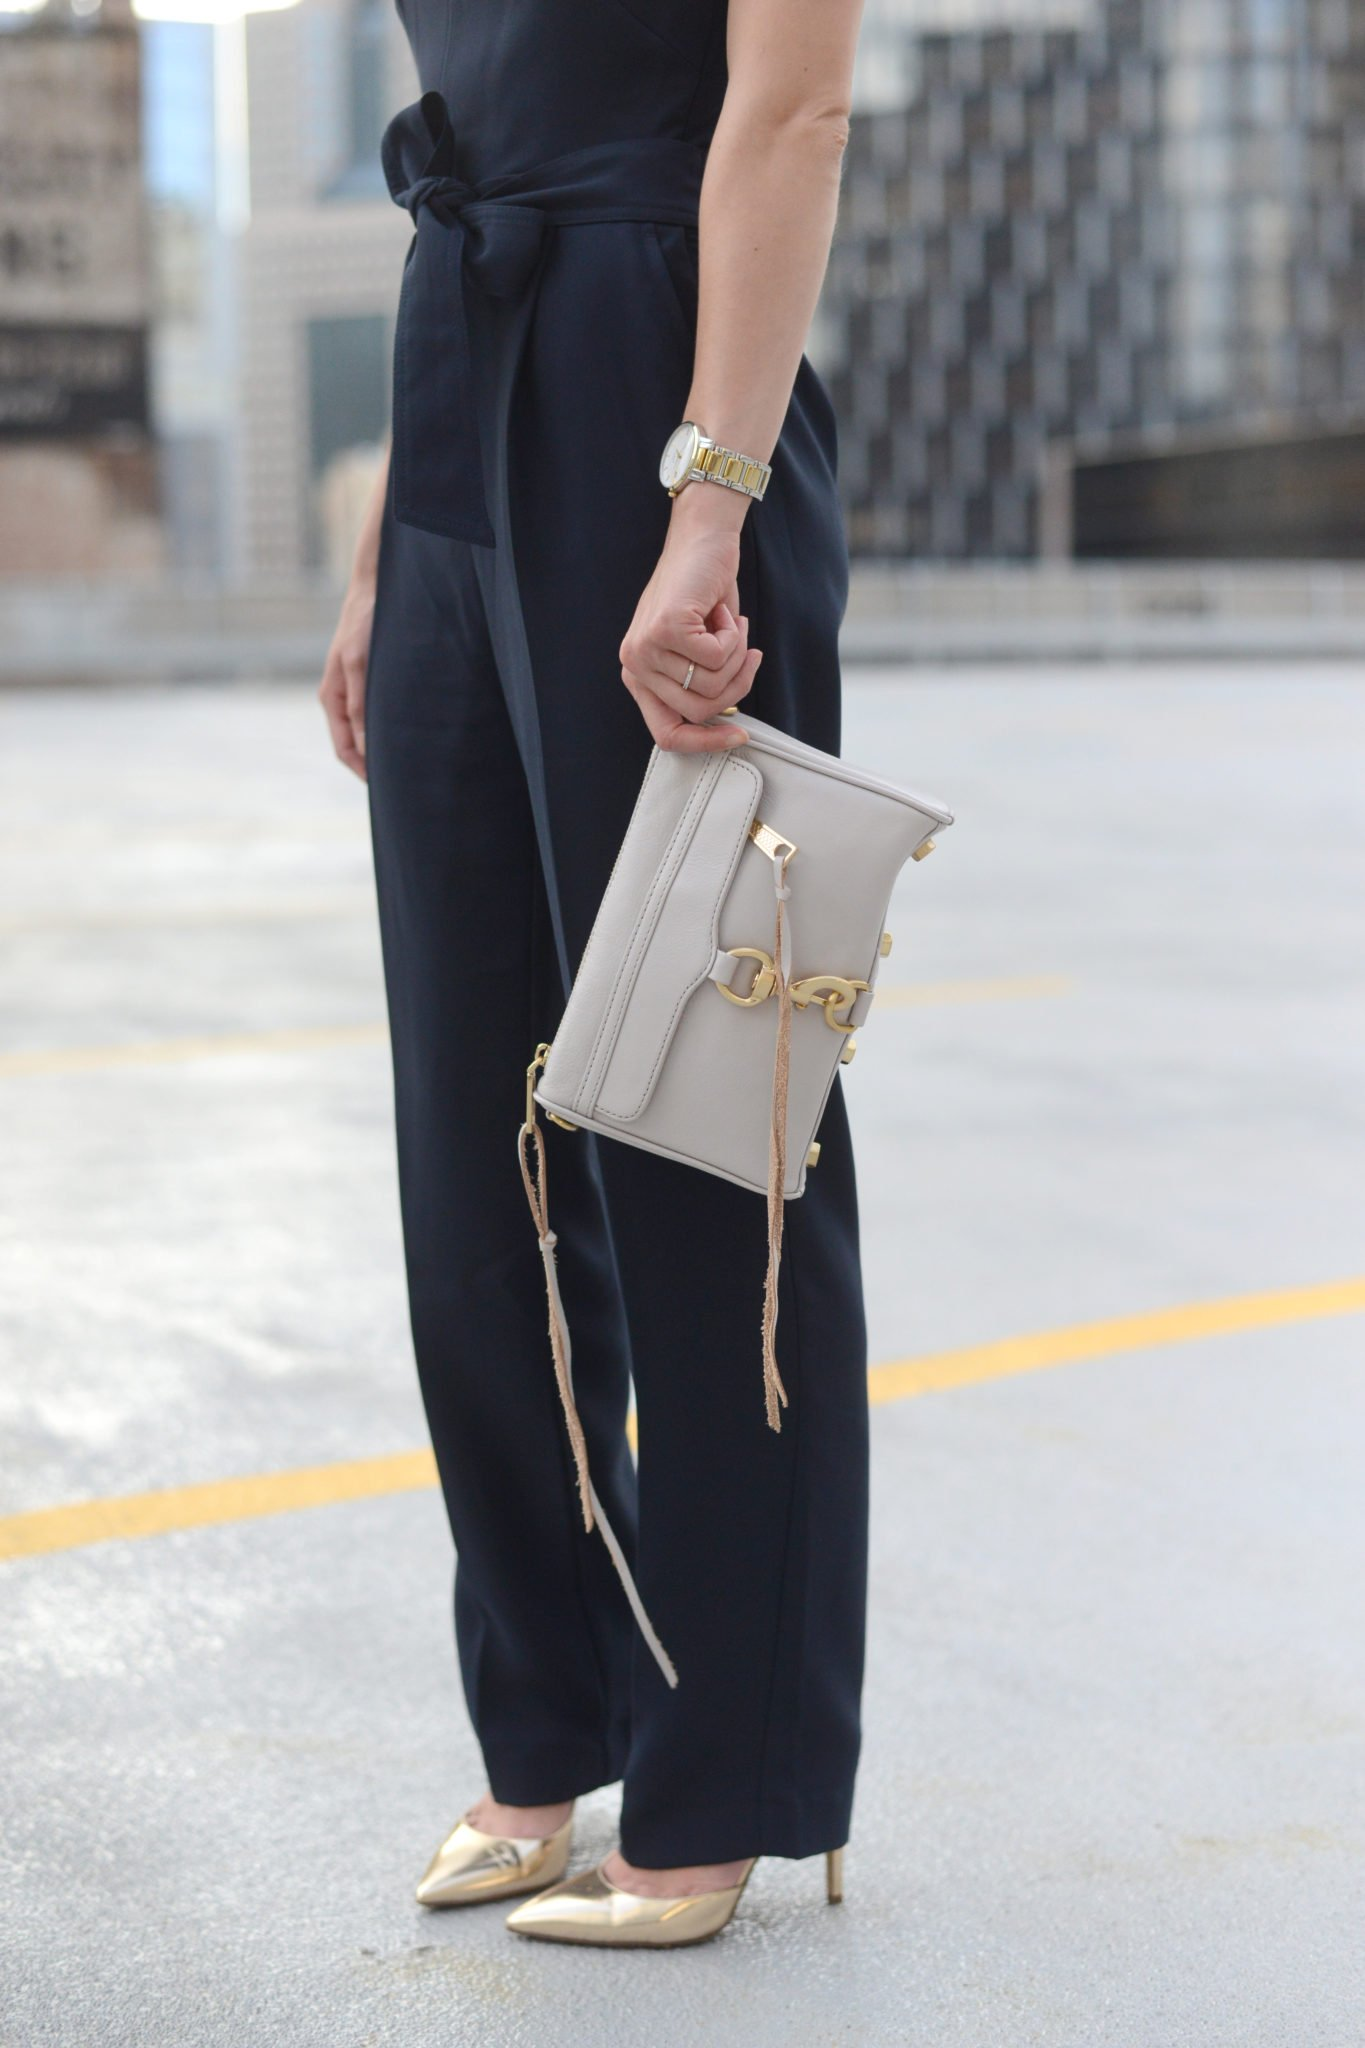 Pittsburgh Fashion blogger Wellesley & King in a petite navy dressy jumpsuit with Rebecca Minkoff Mini Mac handbag